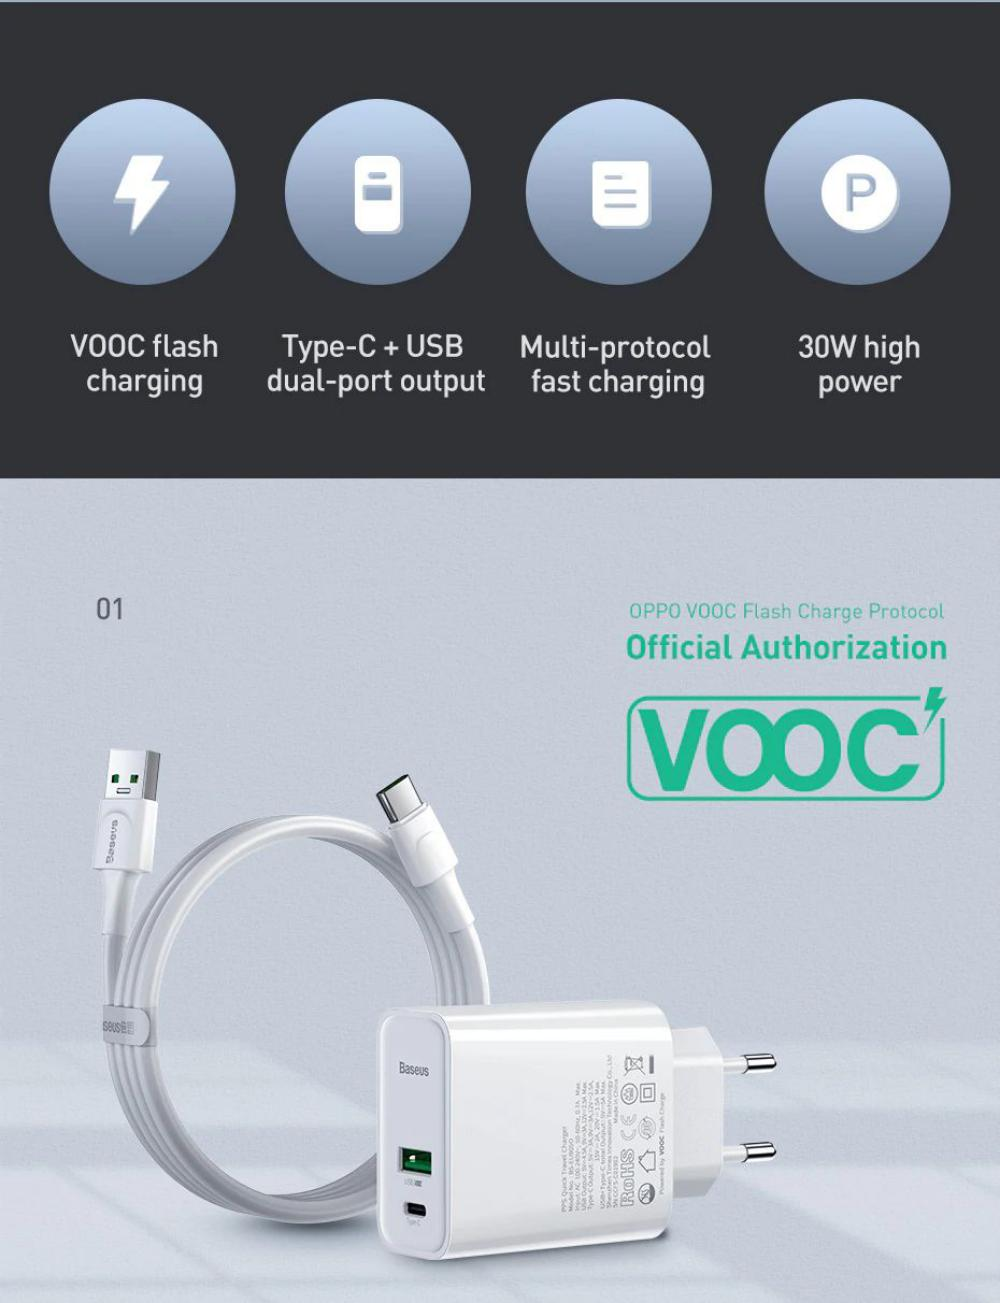 Baseus Speed Pps 30w Vooc Flash Charger (1)